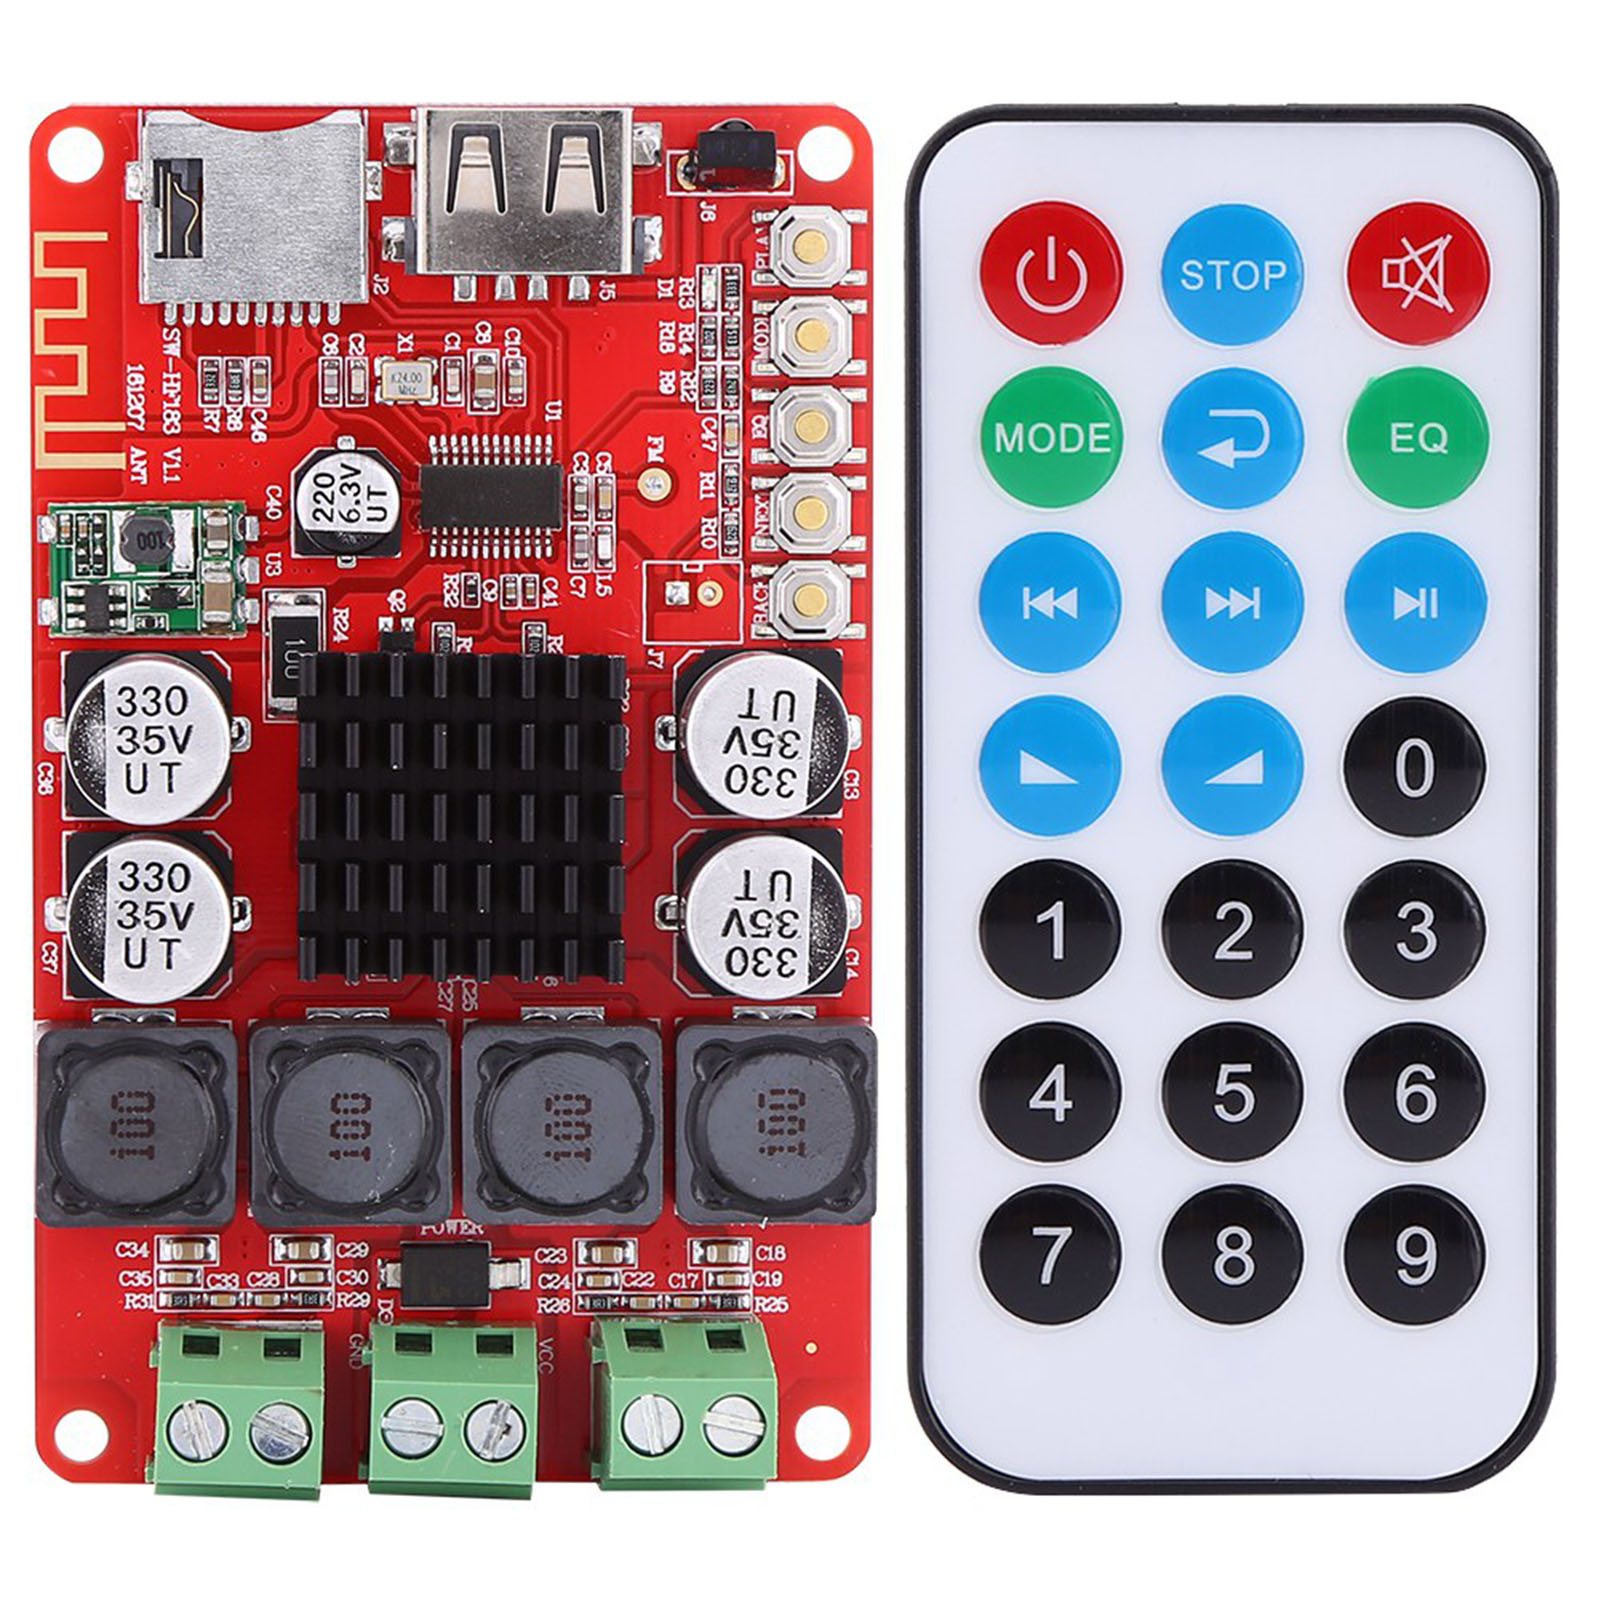 BLUETOOTH-AUDIO-RICEVITORE-MODULO-MP3-WMA-USB-TF-SCHEDA-DECODING-BOARD-BOARDCAST